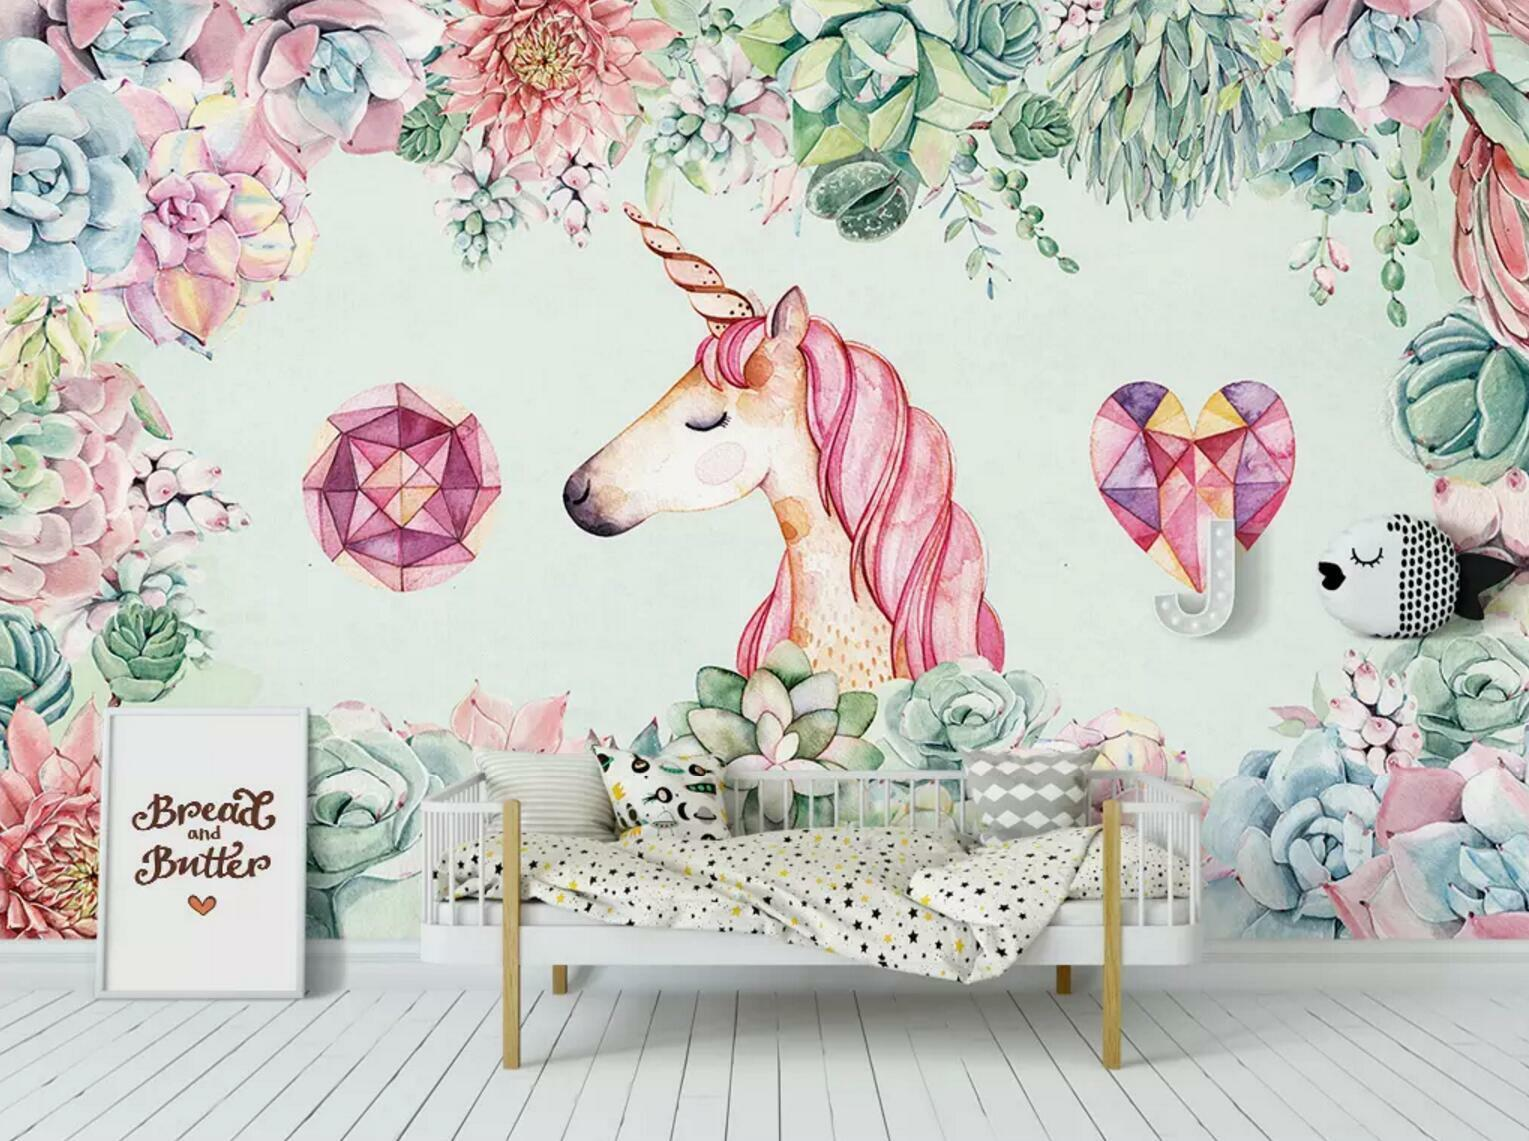 3D Unicorn Garden 67 Wall Paper Exclusive MXY Wallpaper Mural Decal Indoor wall